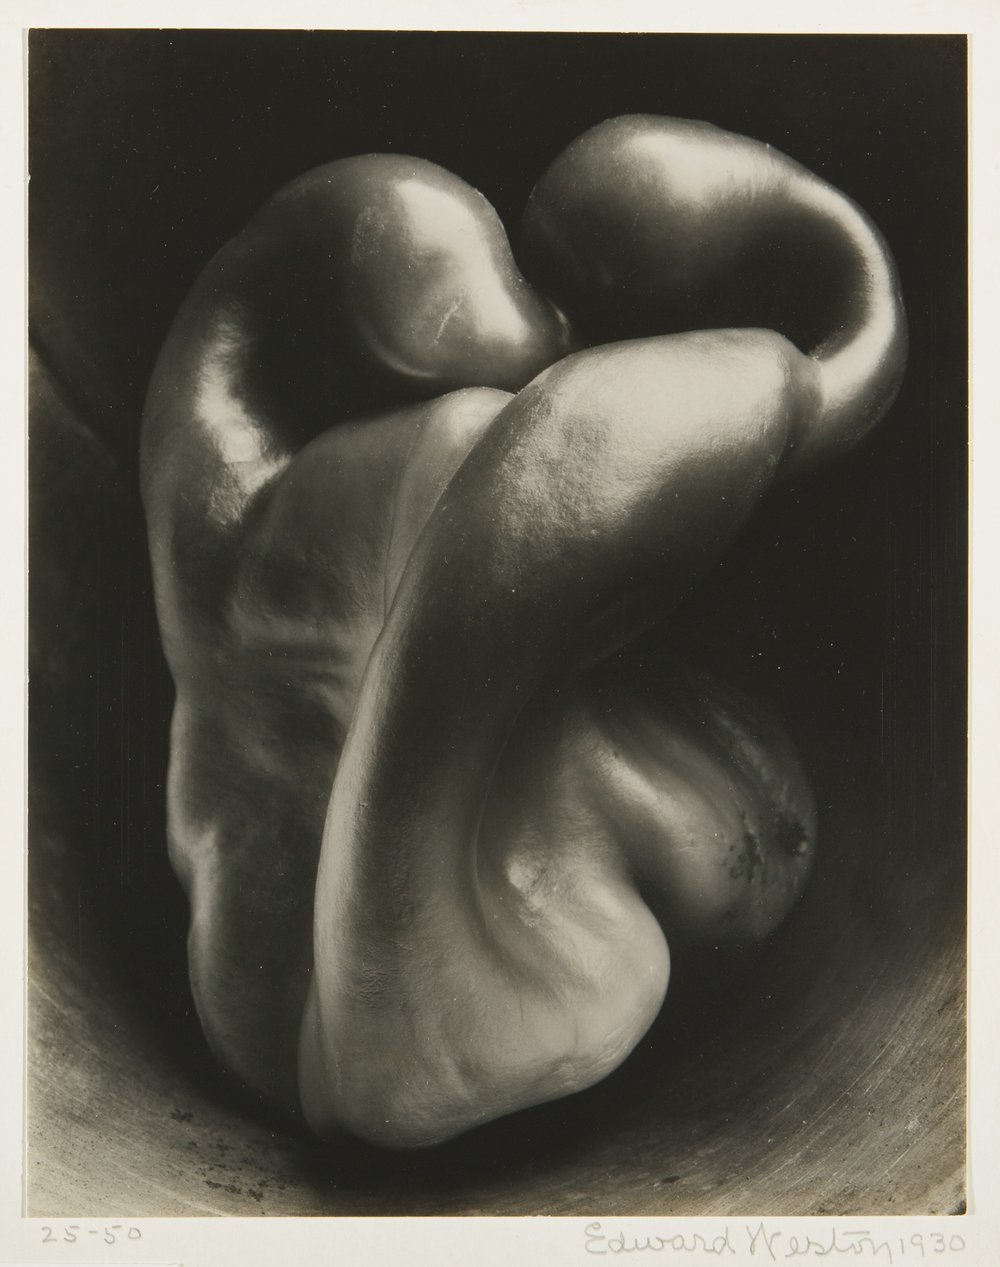 Pepper No. 30 - Edward Weston